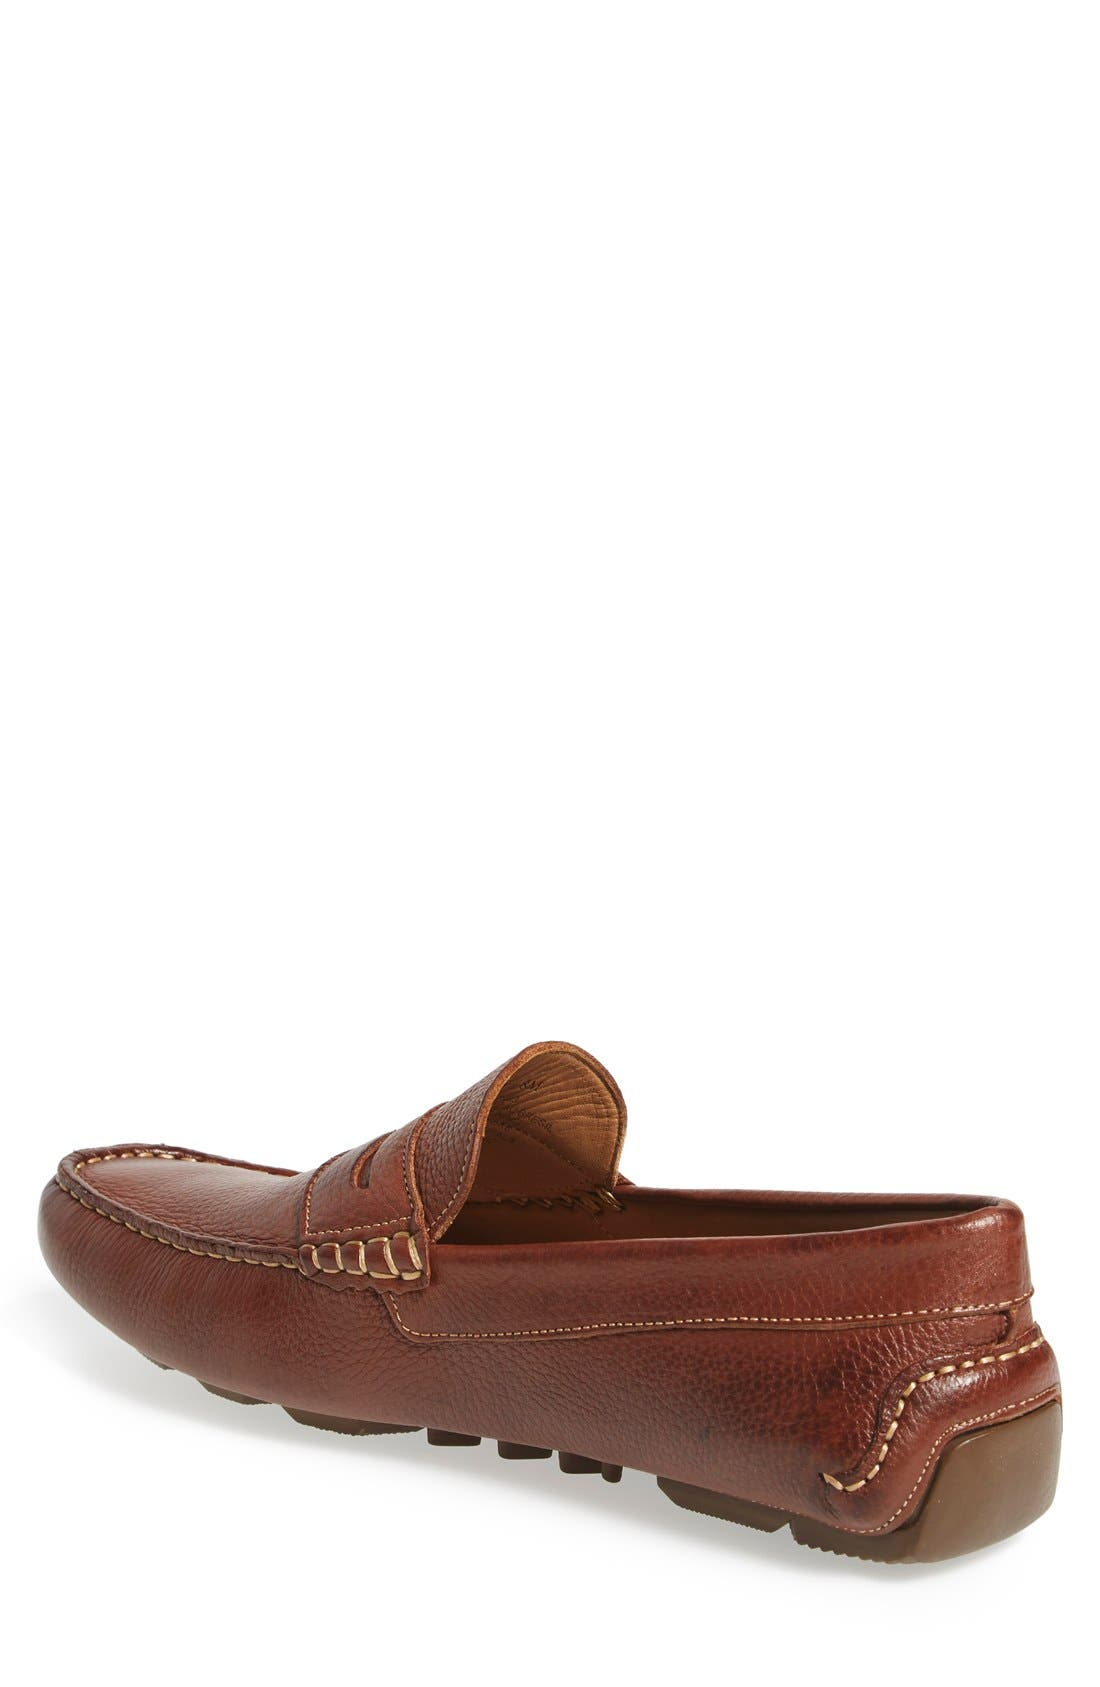 'Bermuda' Penny Loafer,                             Alternate thumbnail 2, color,                             TAN LEATHER